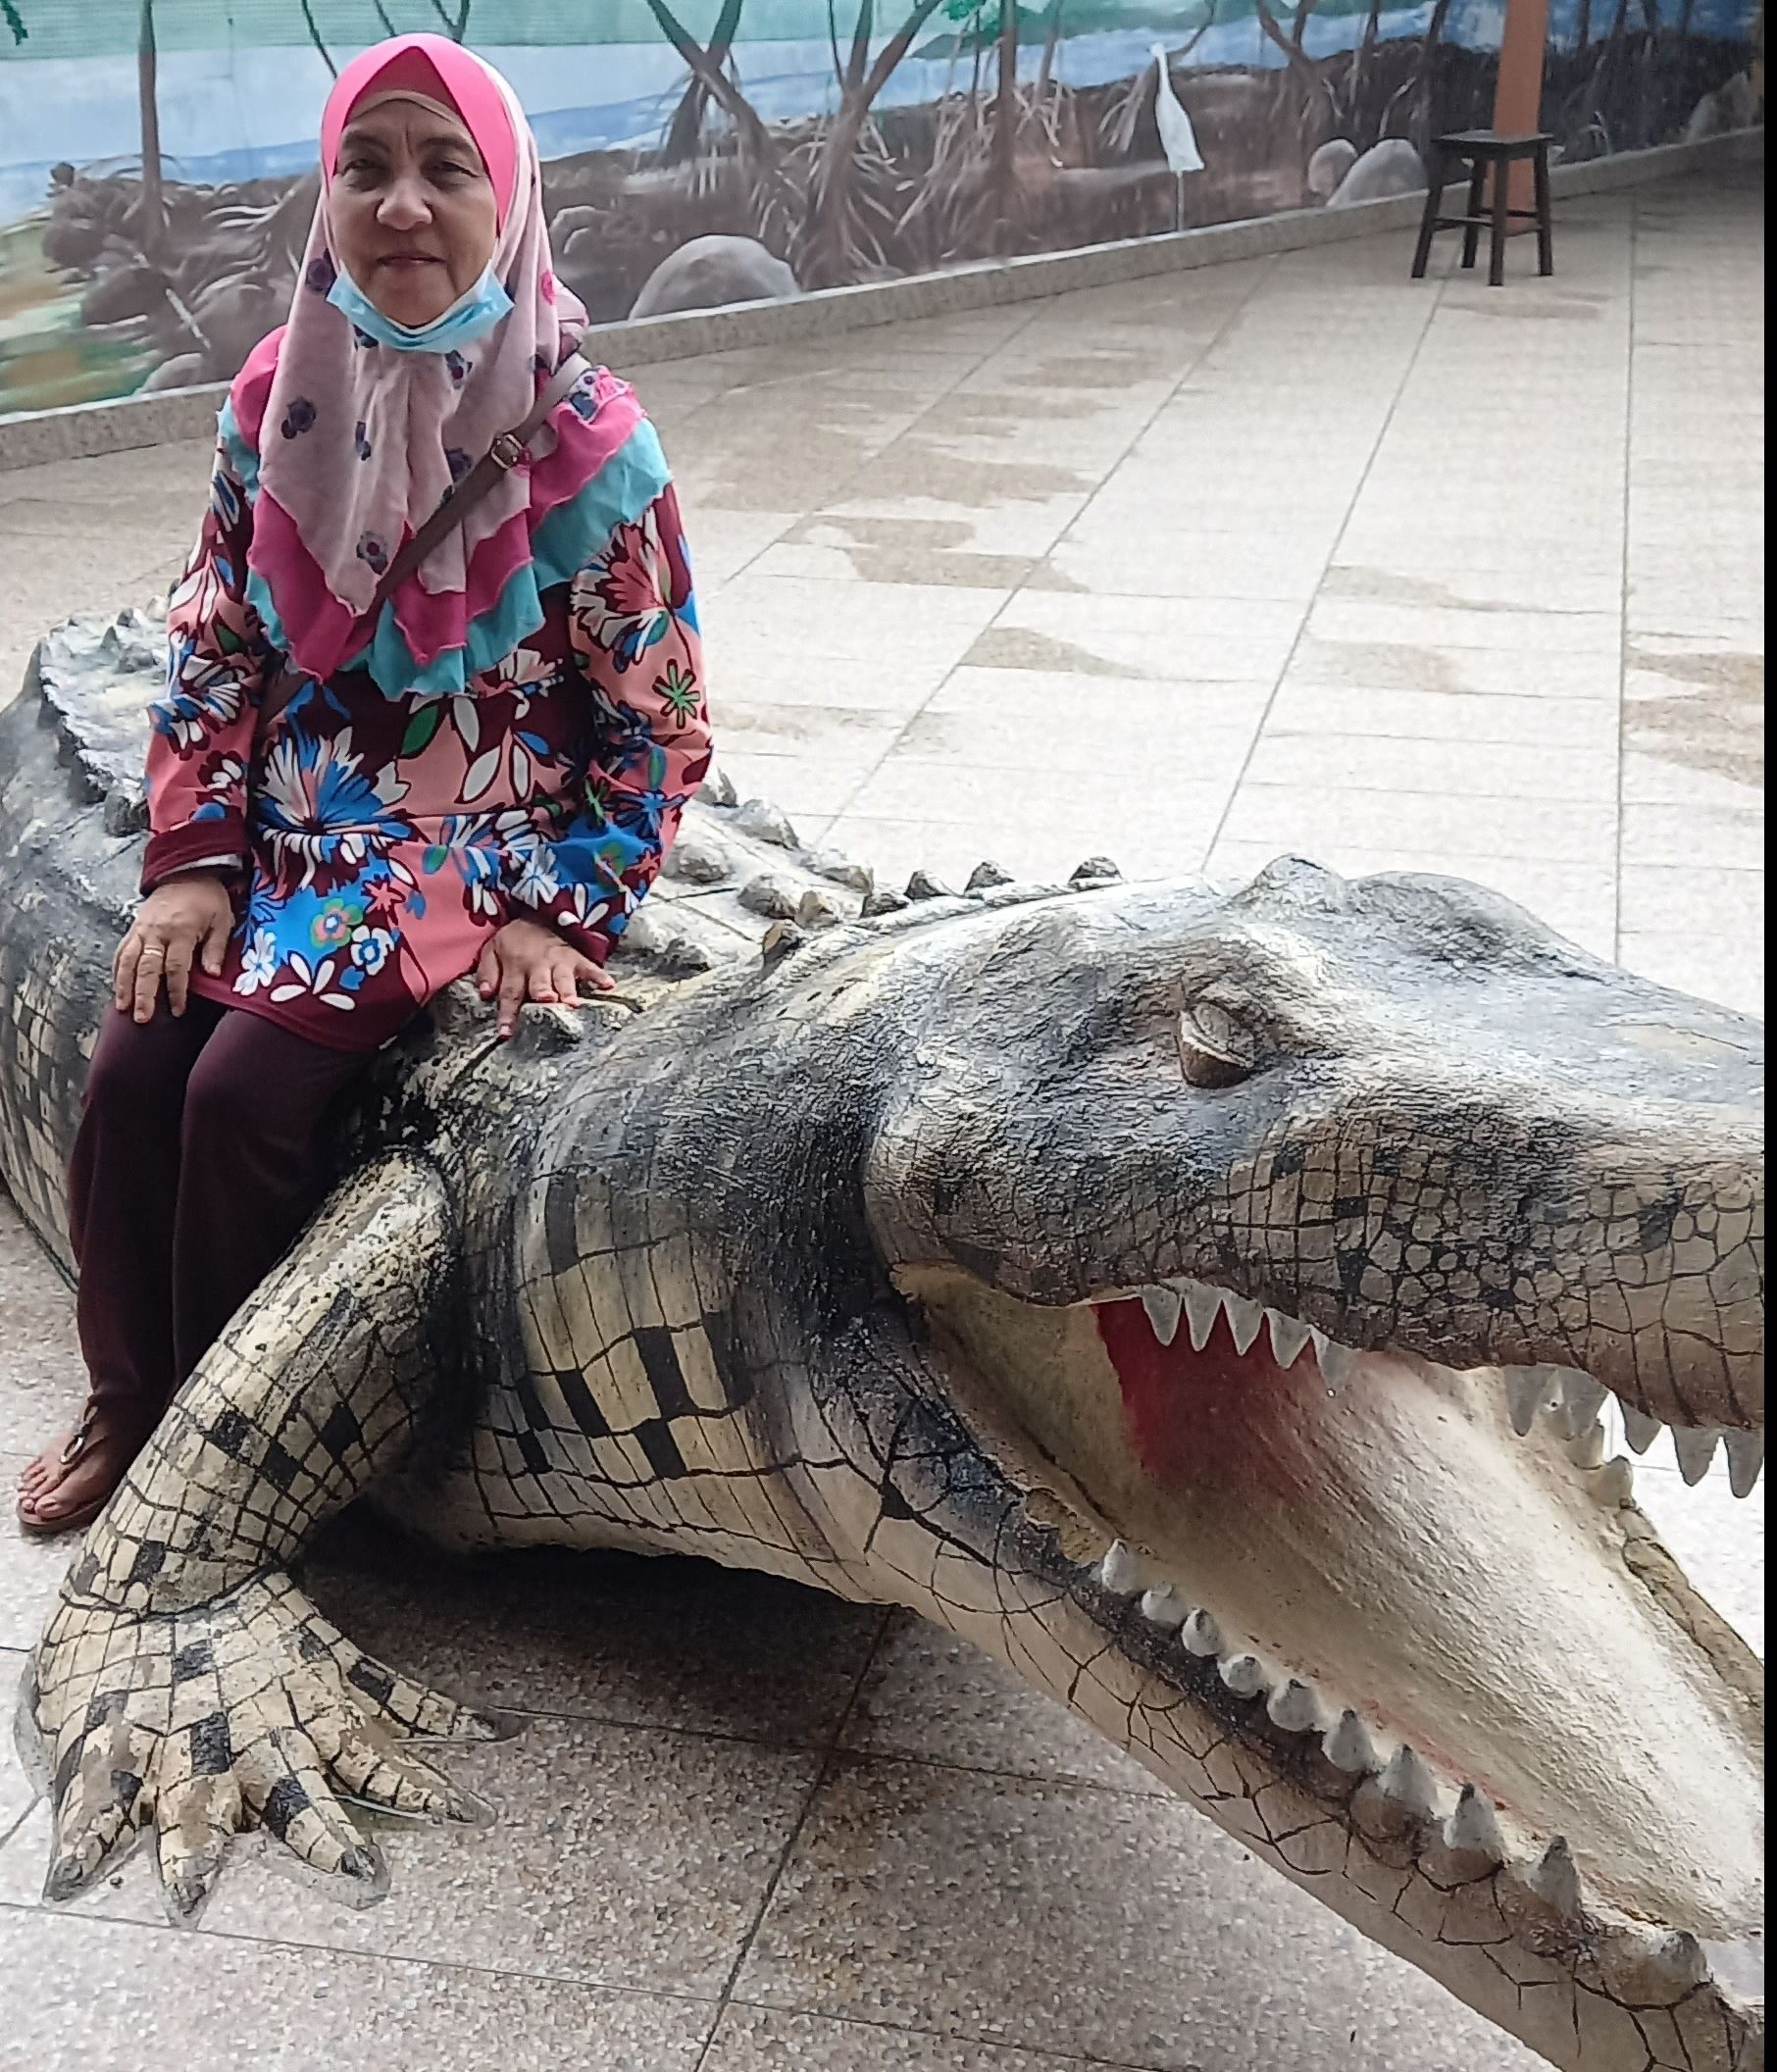 Zaiton Binti Ahmad poses on a replica crocodile. She is wearing a ruffled headscarf and a floral blouse. She is smiling.